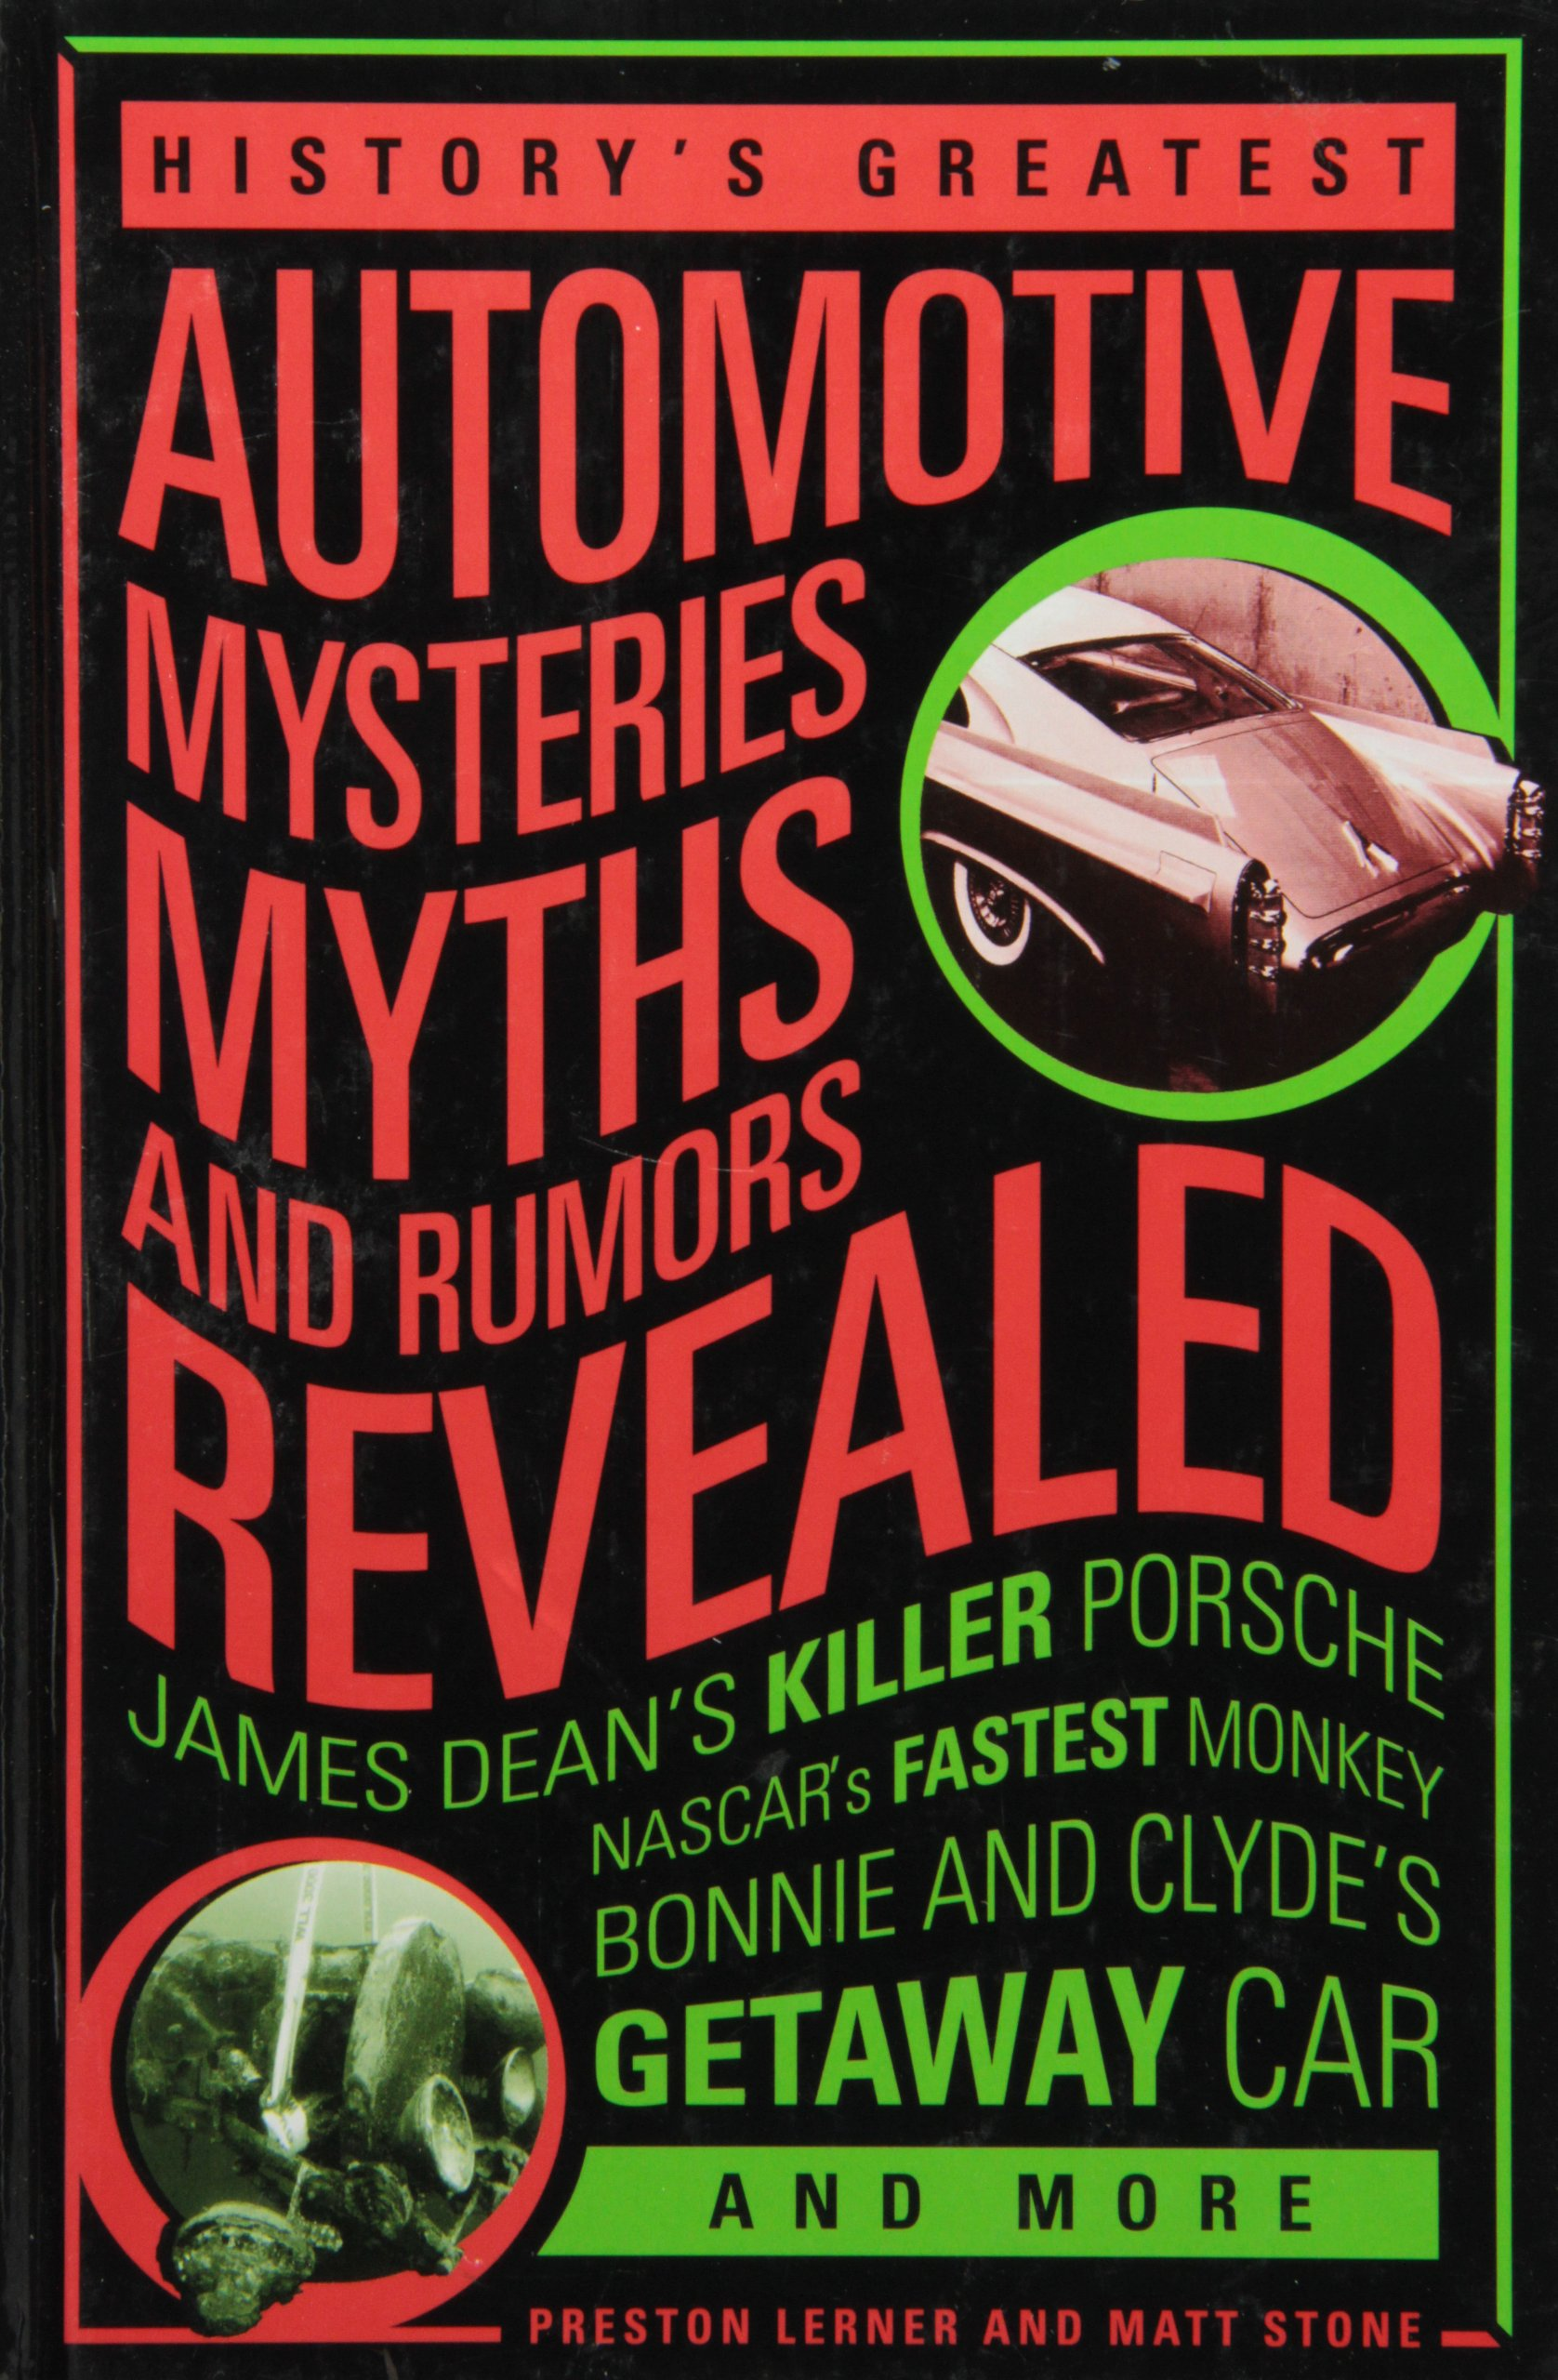 History's Greatest Automotive Mysteries, Myths, and Rumors Revealed: James Dean's Killer Porsche, NASCAR's Fastest Monkey, Bonnie and Clyde's Getaway Car, and More pdf